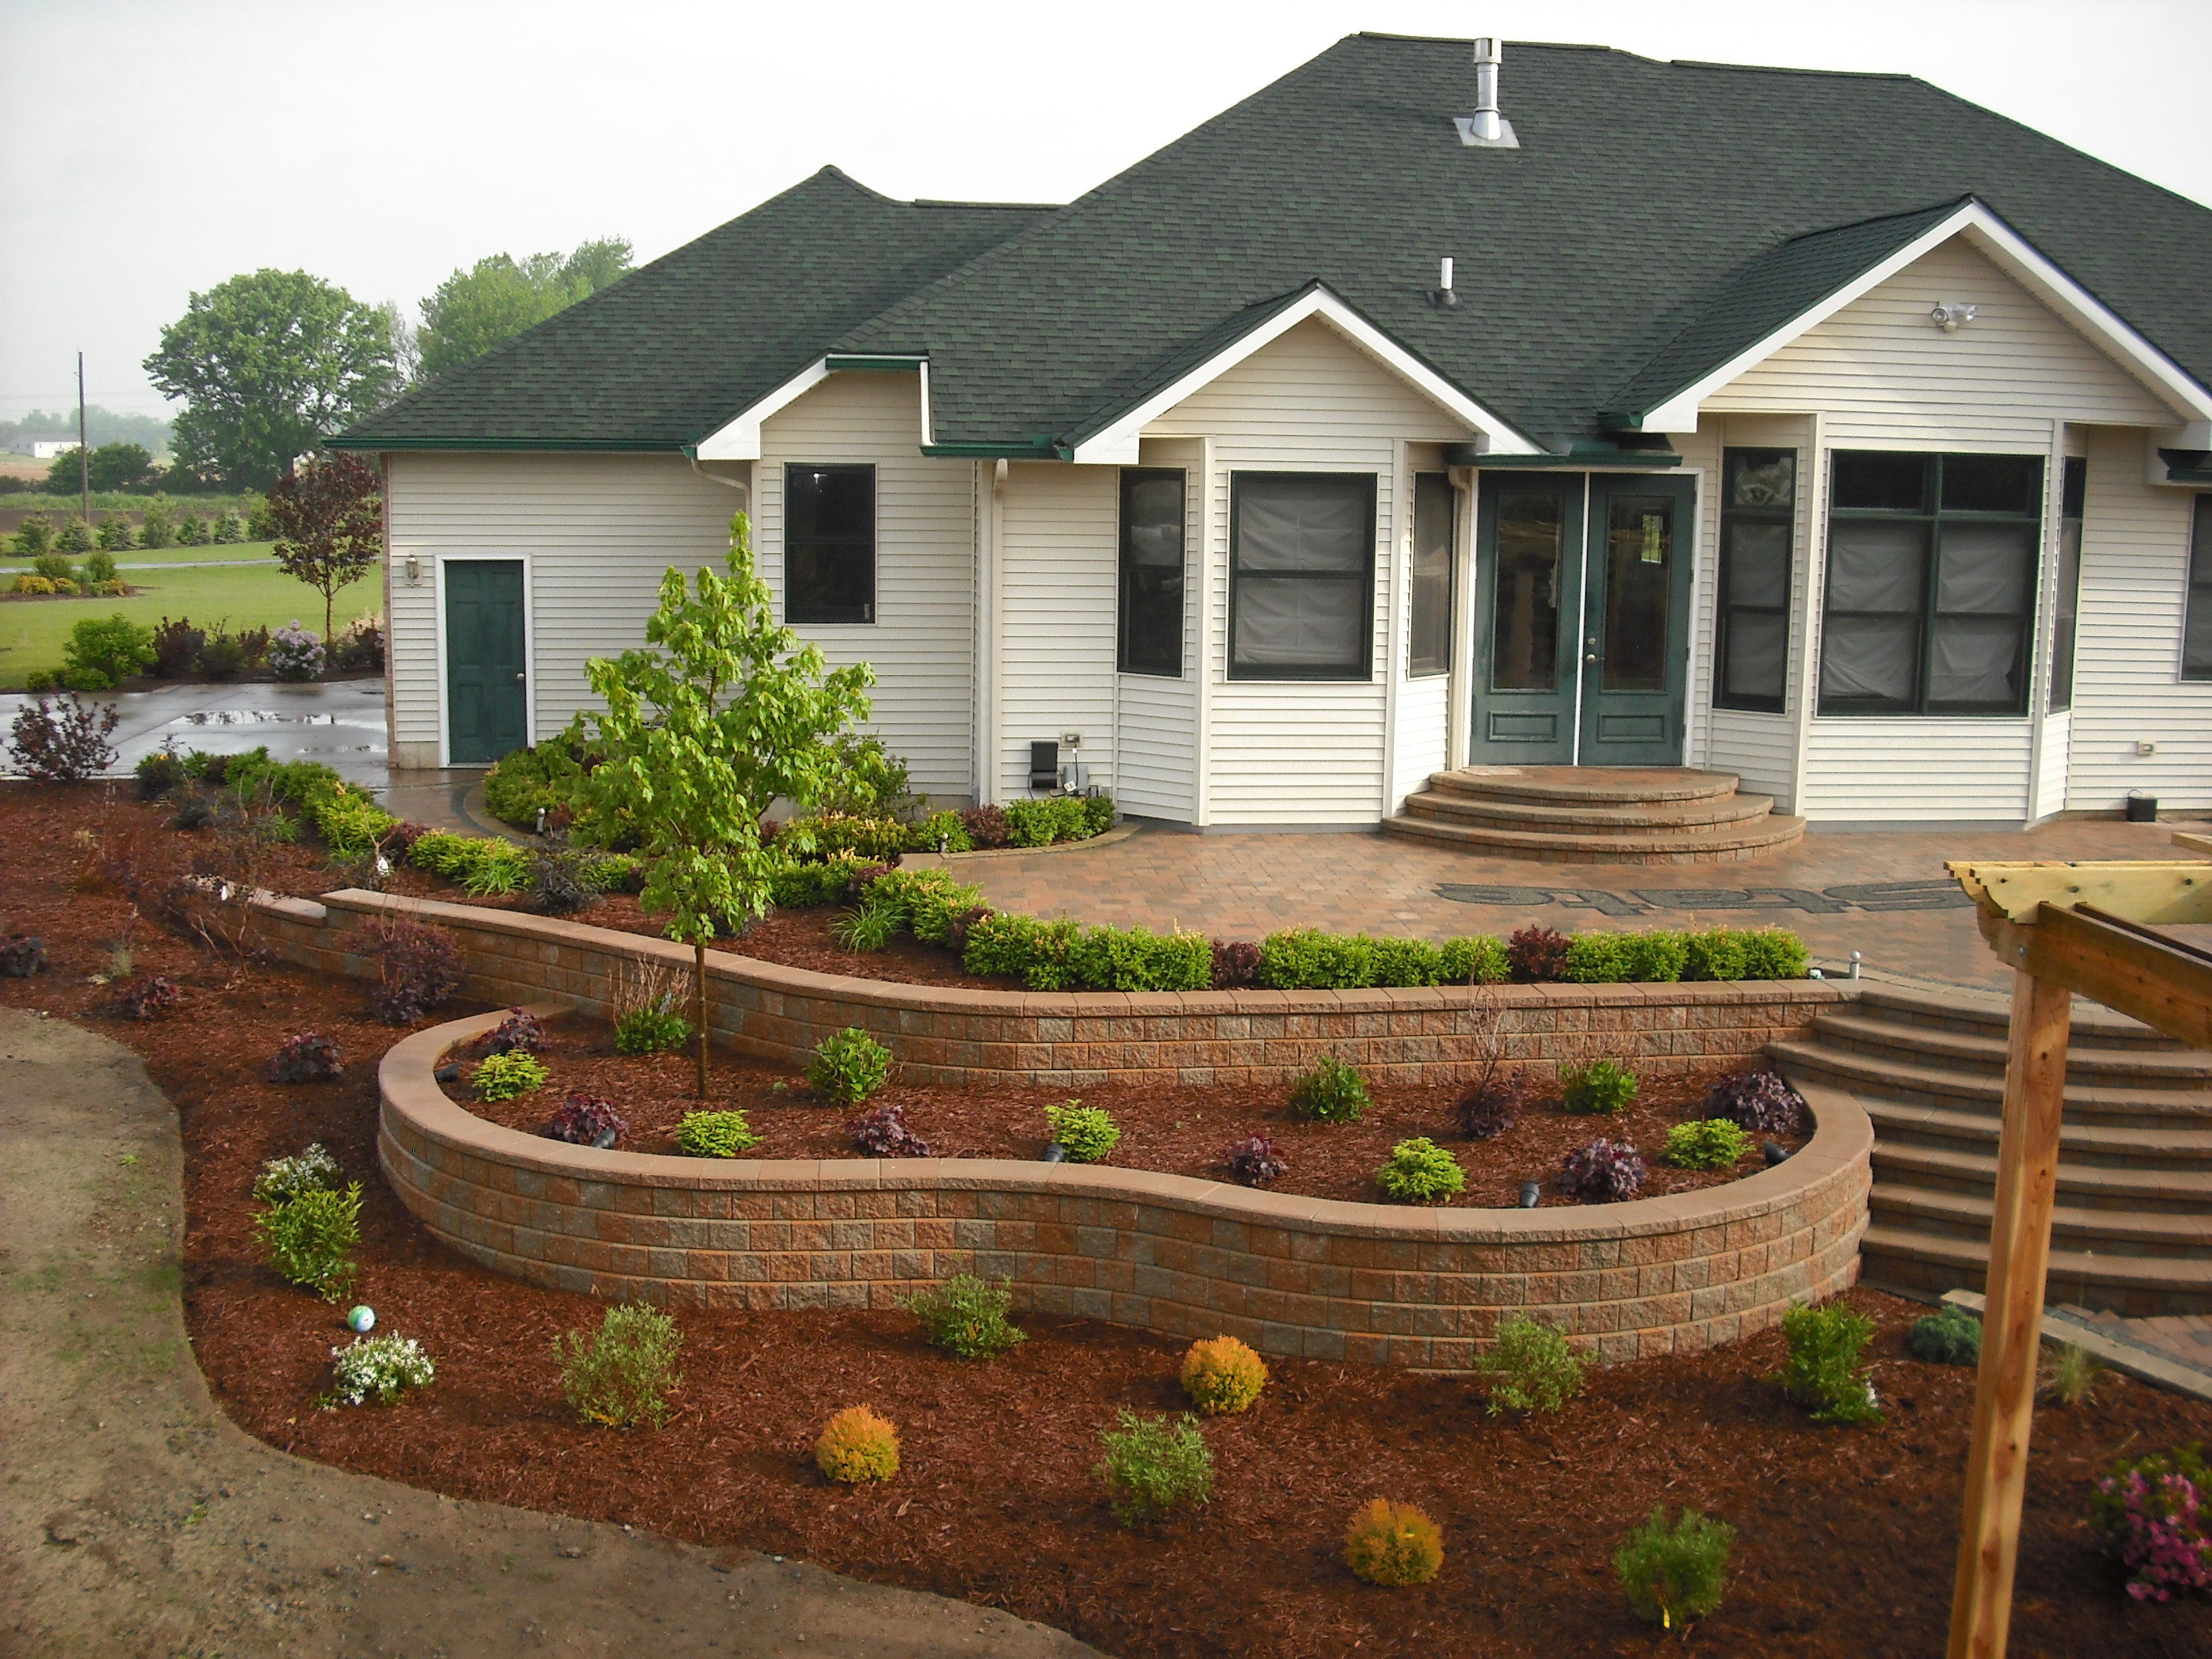 Landscaping wall construction company north va md dc for Designs for brick garden walls